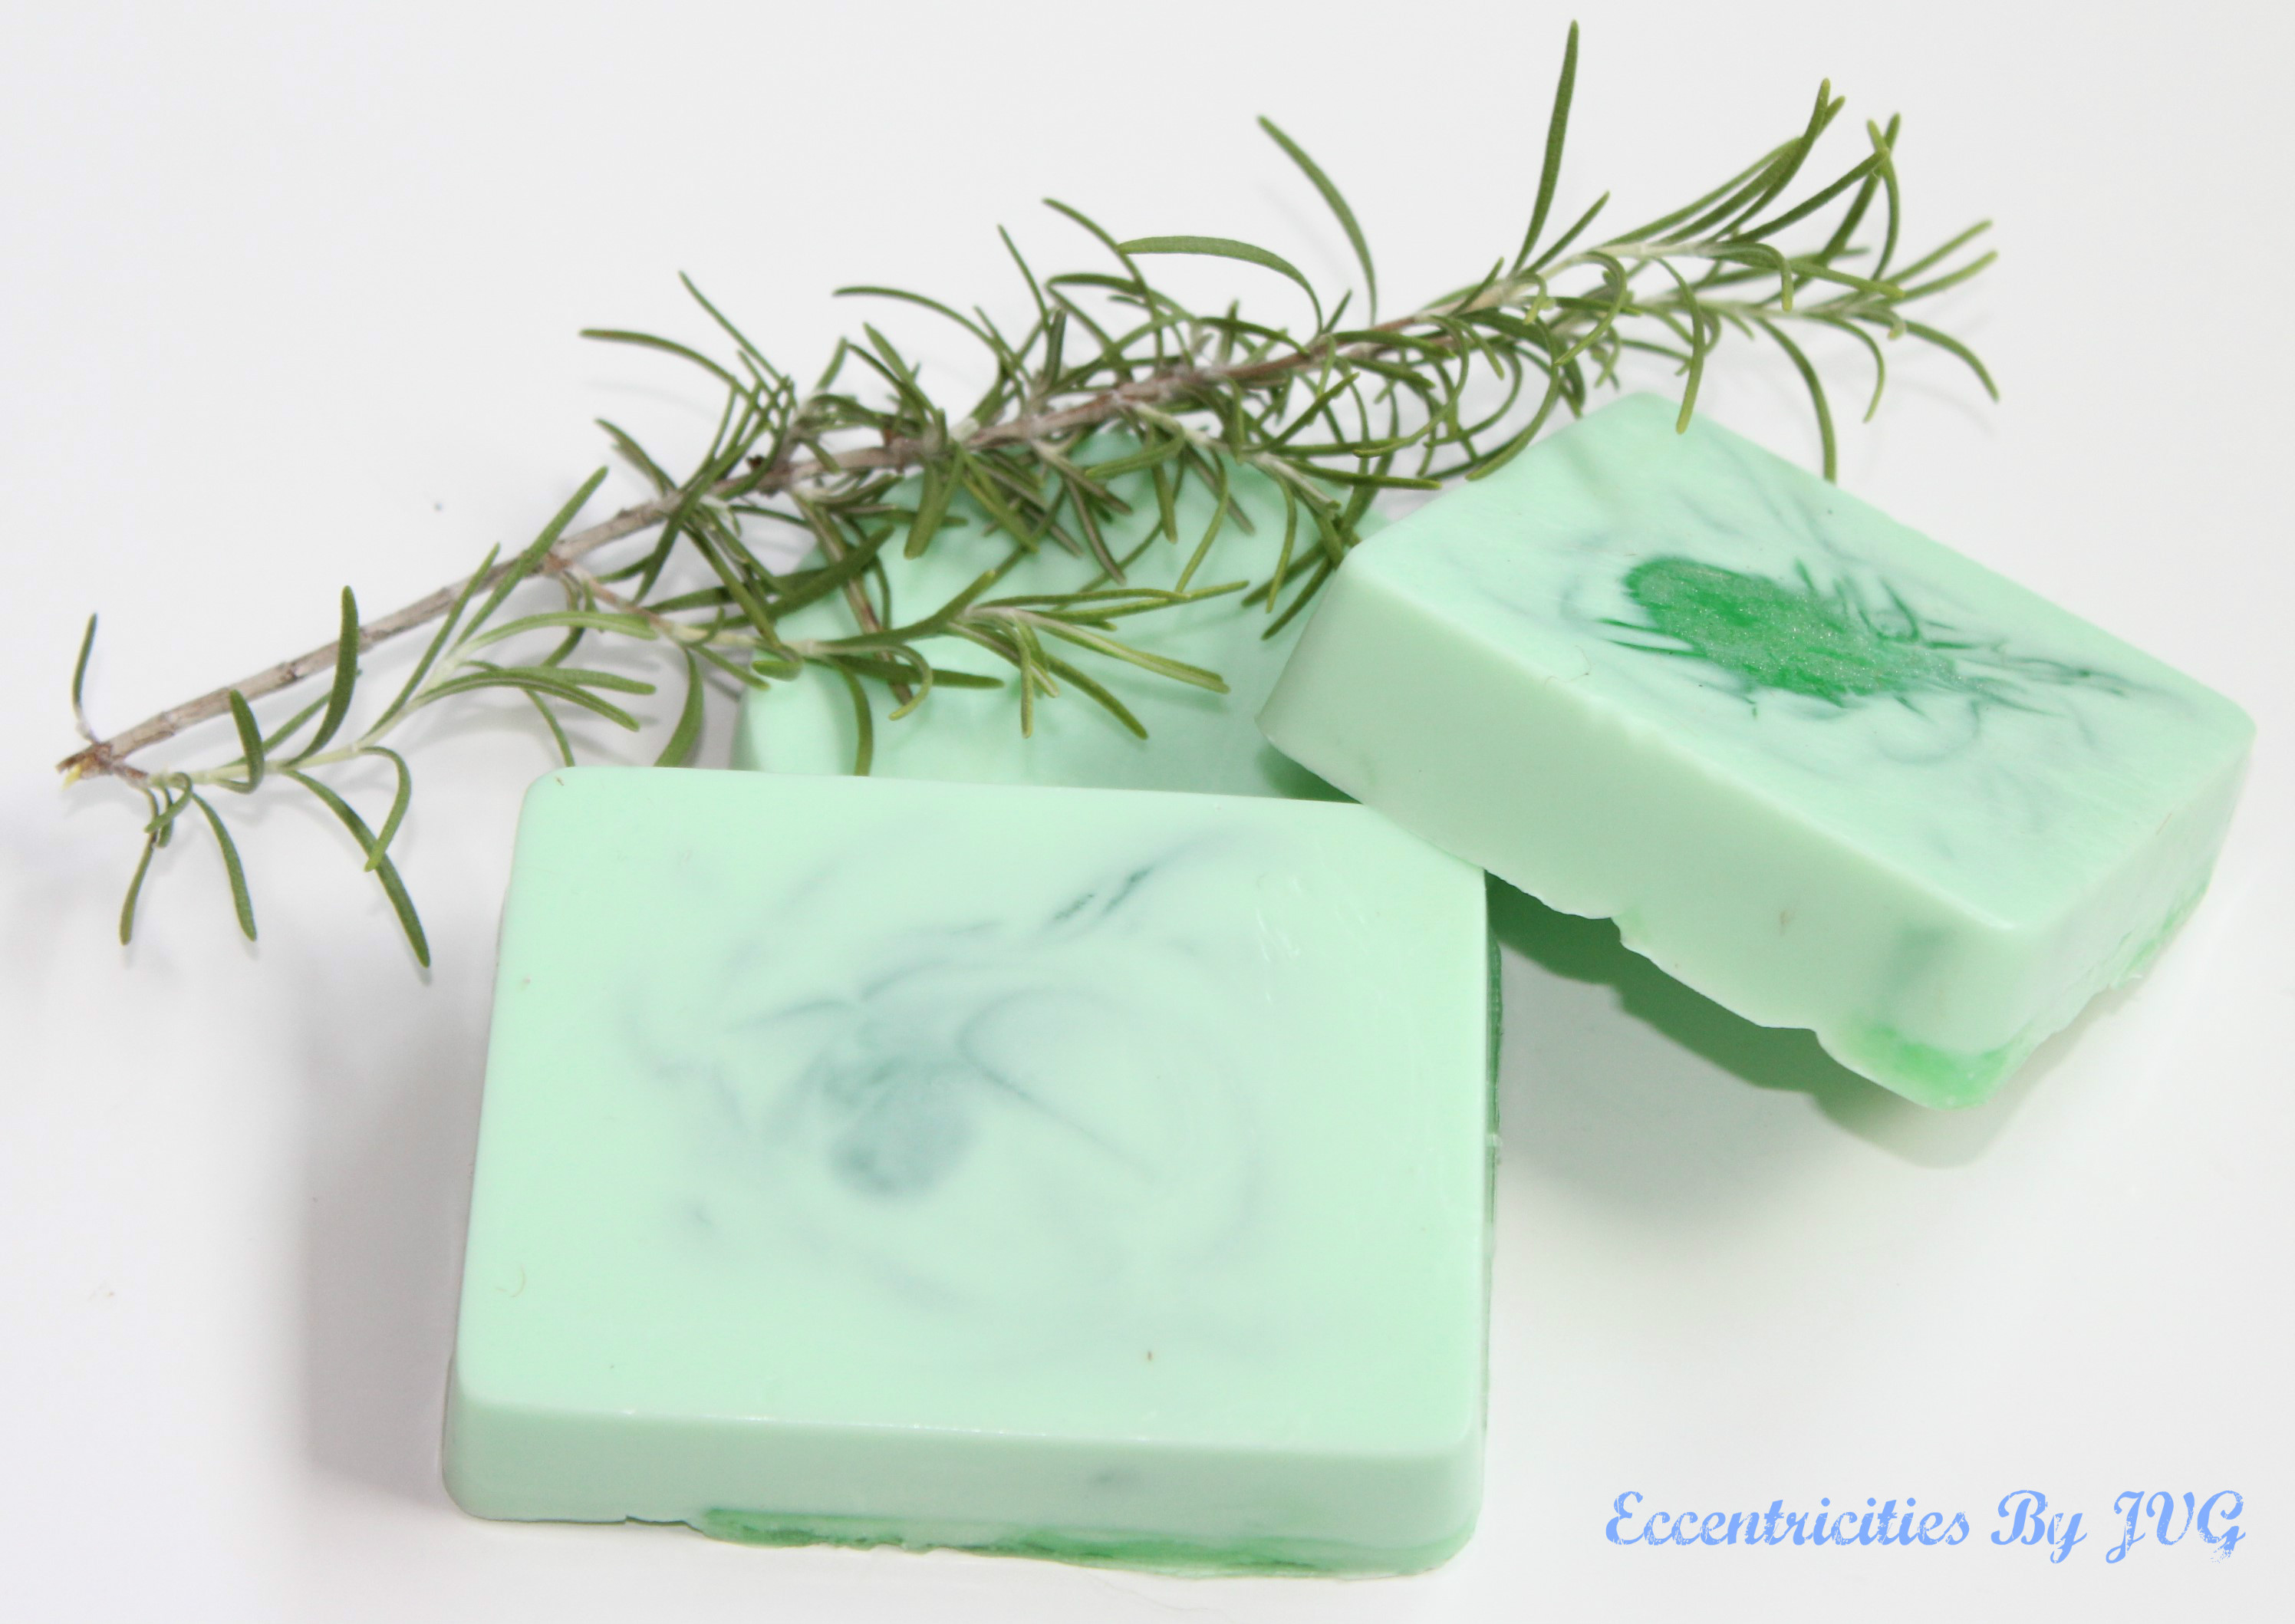 homemade soap making with fresh rosemary from the garden